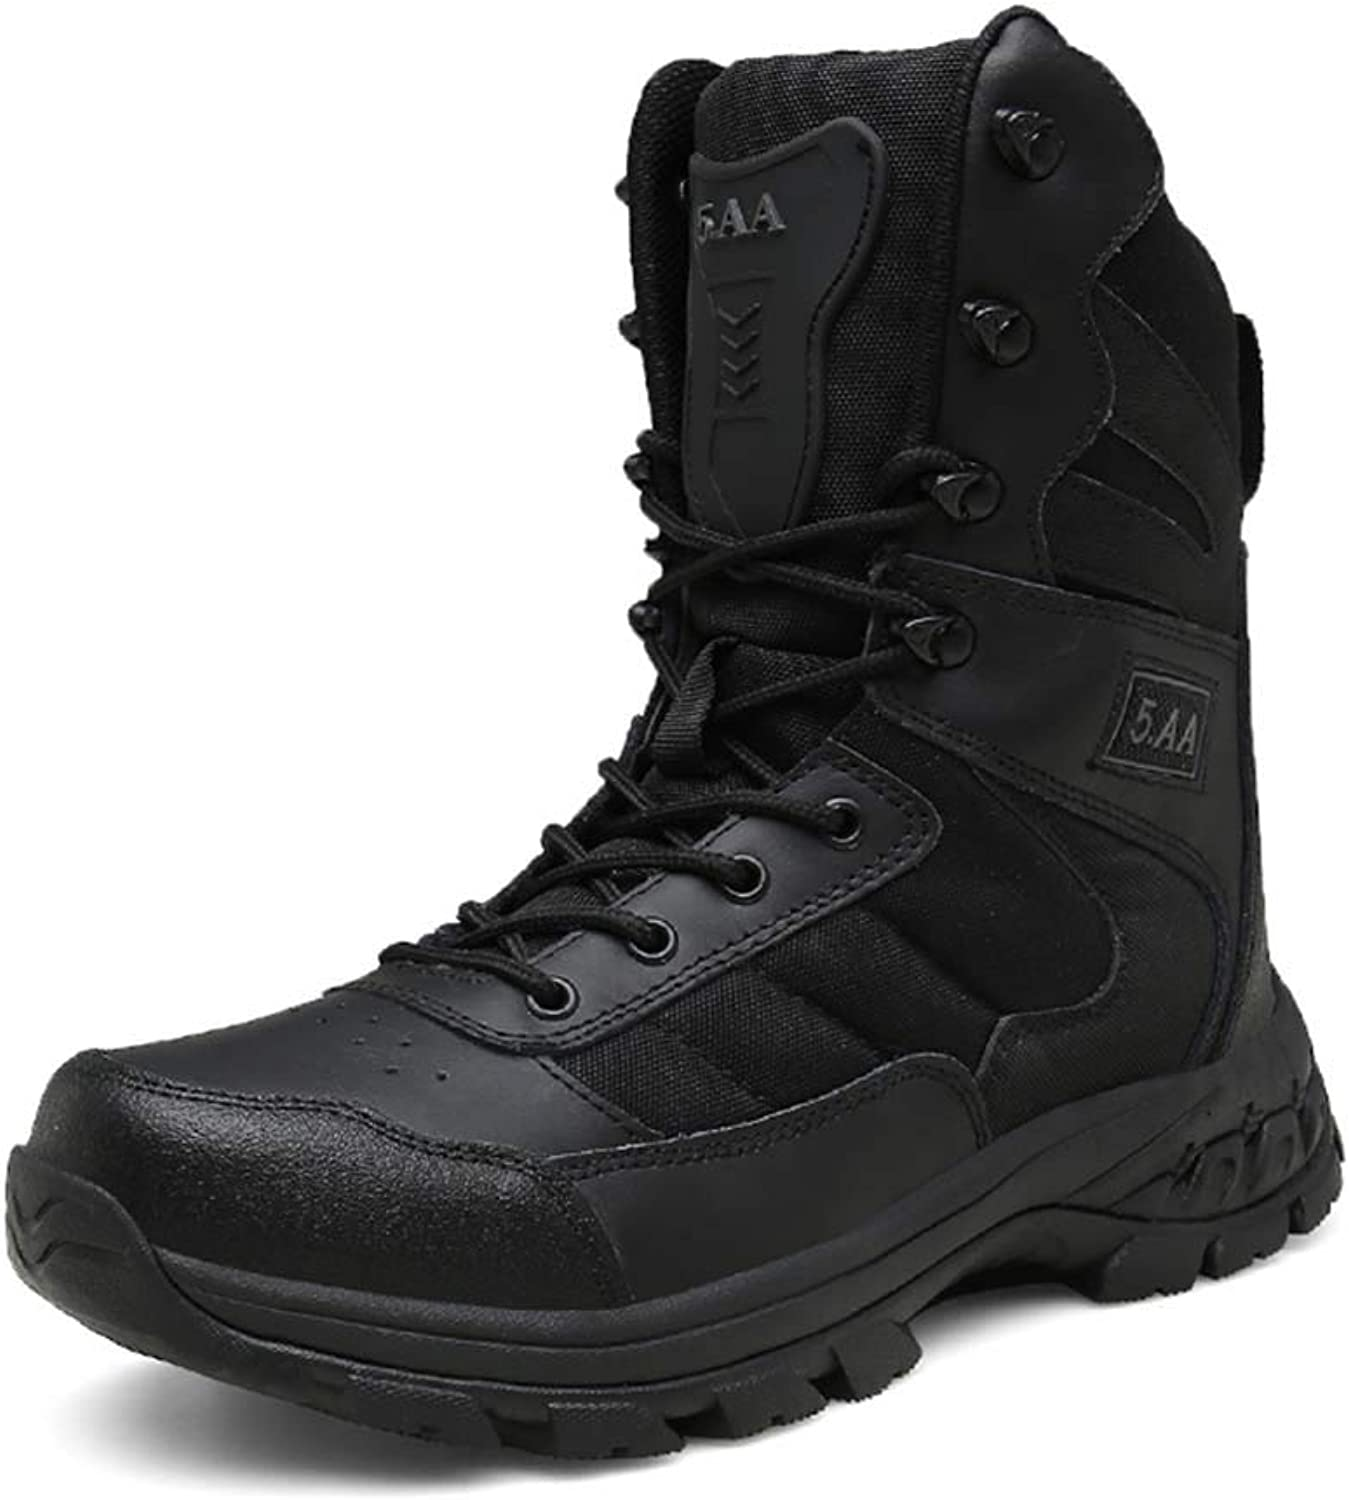 Men's Leather Tactical Boots Lightweight Breathable Waterproof Military Boots Hiking Work Boots